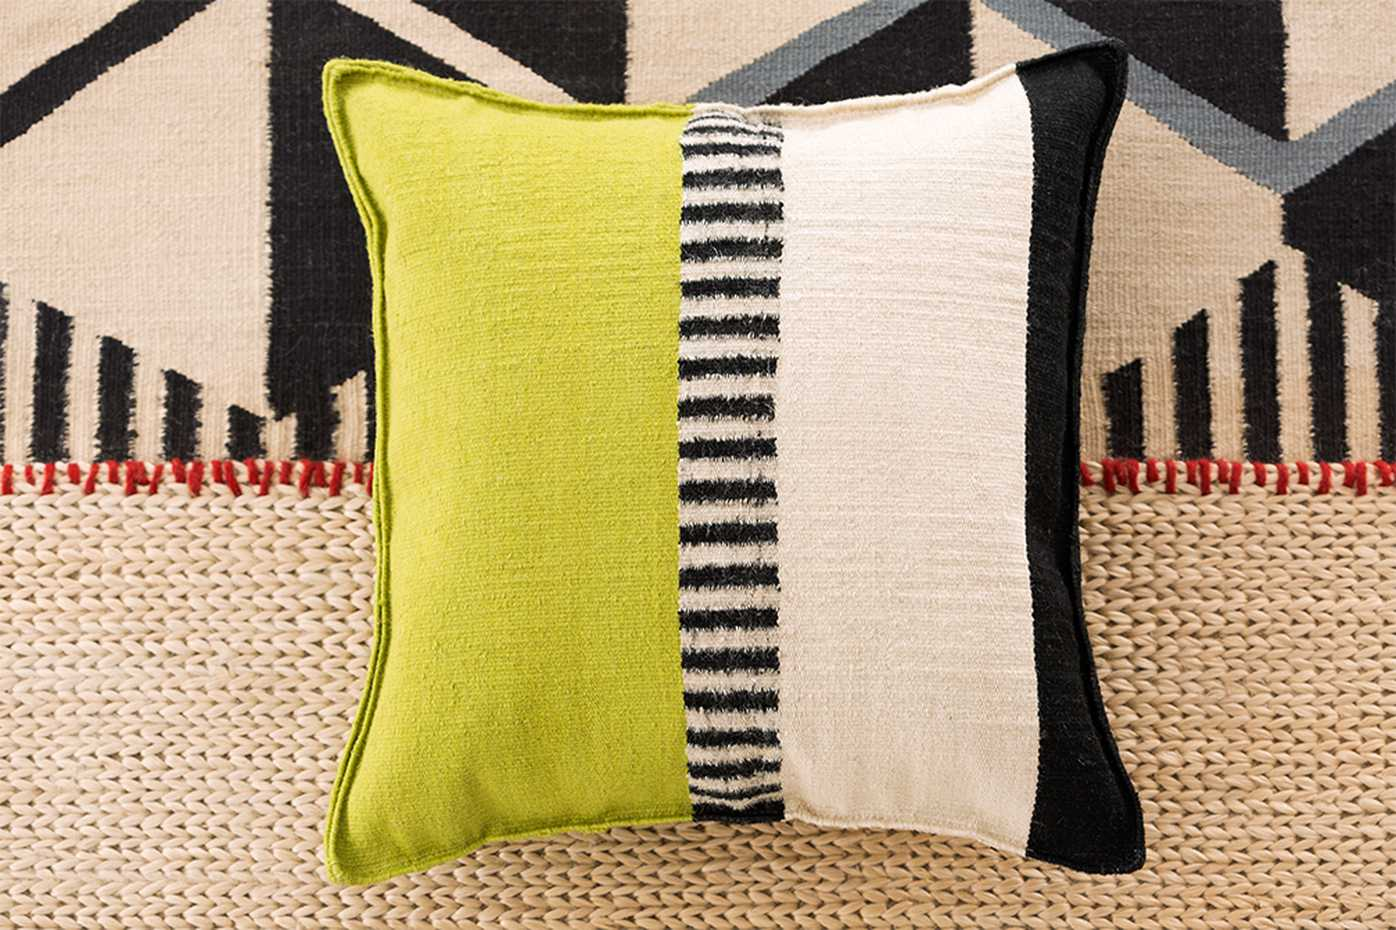 Rustic Chic Cushions by Gan Rugs product image 3